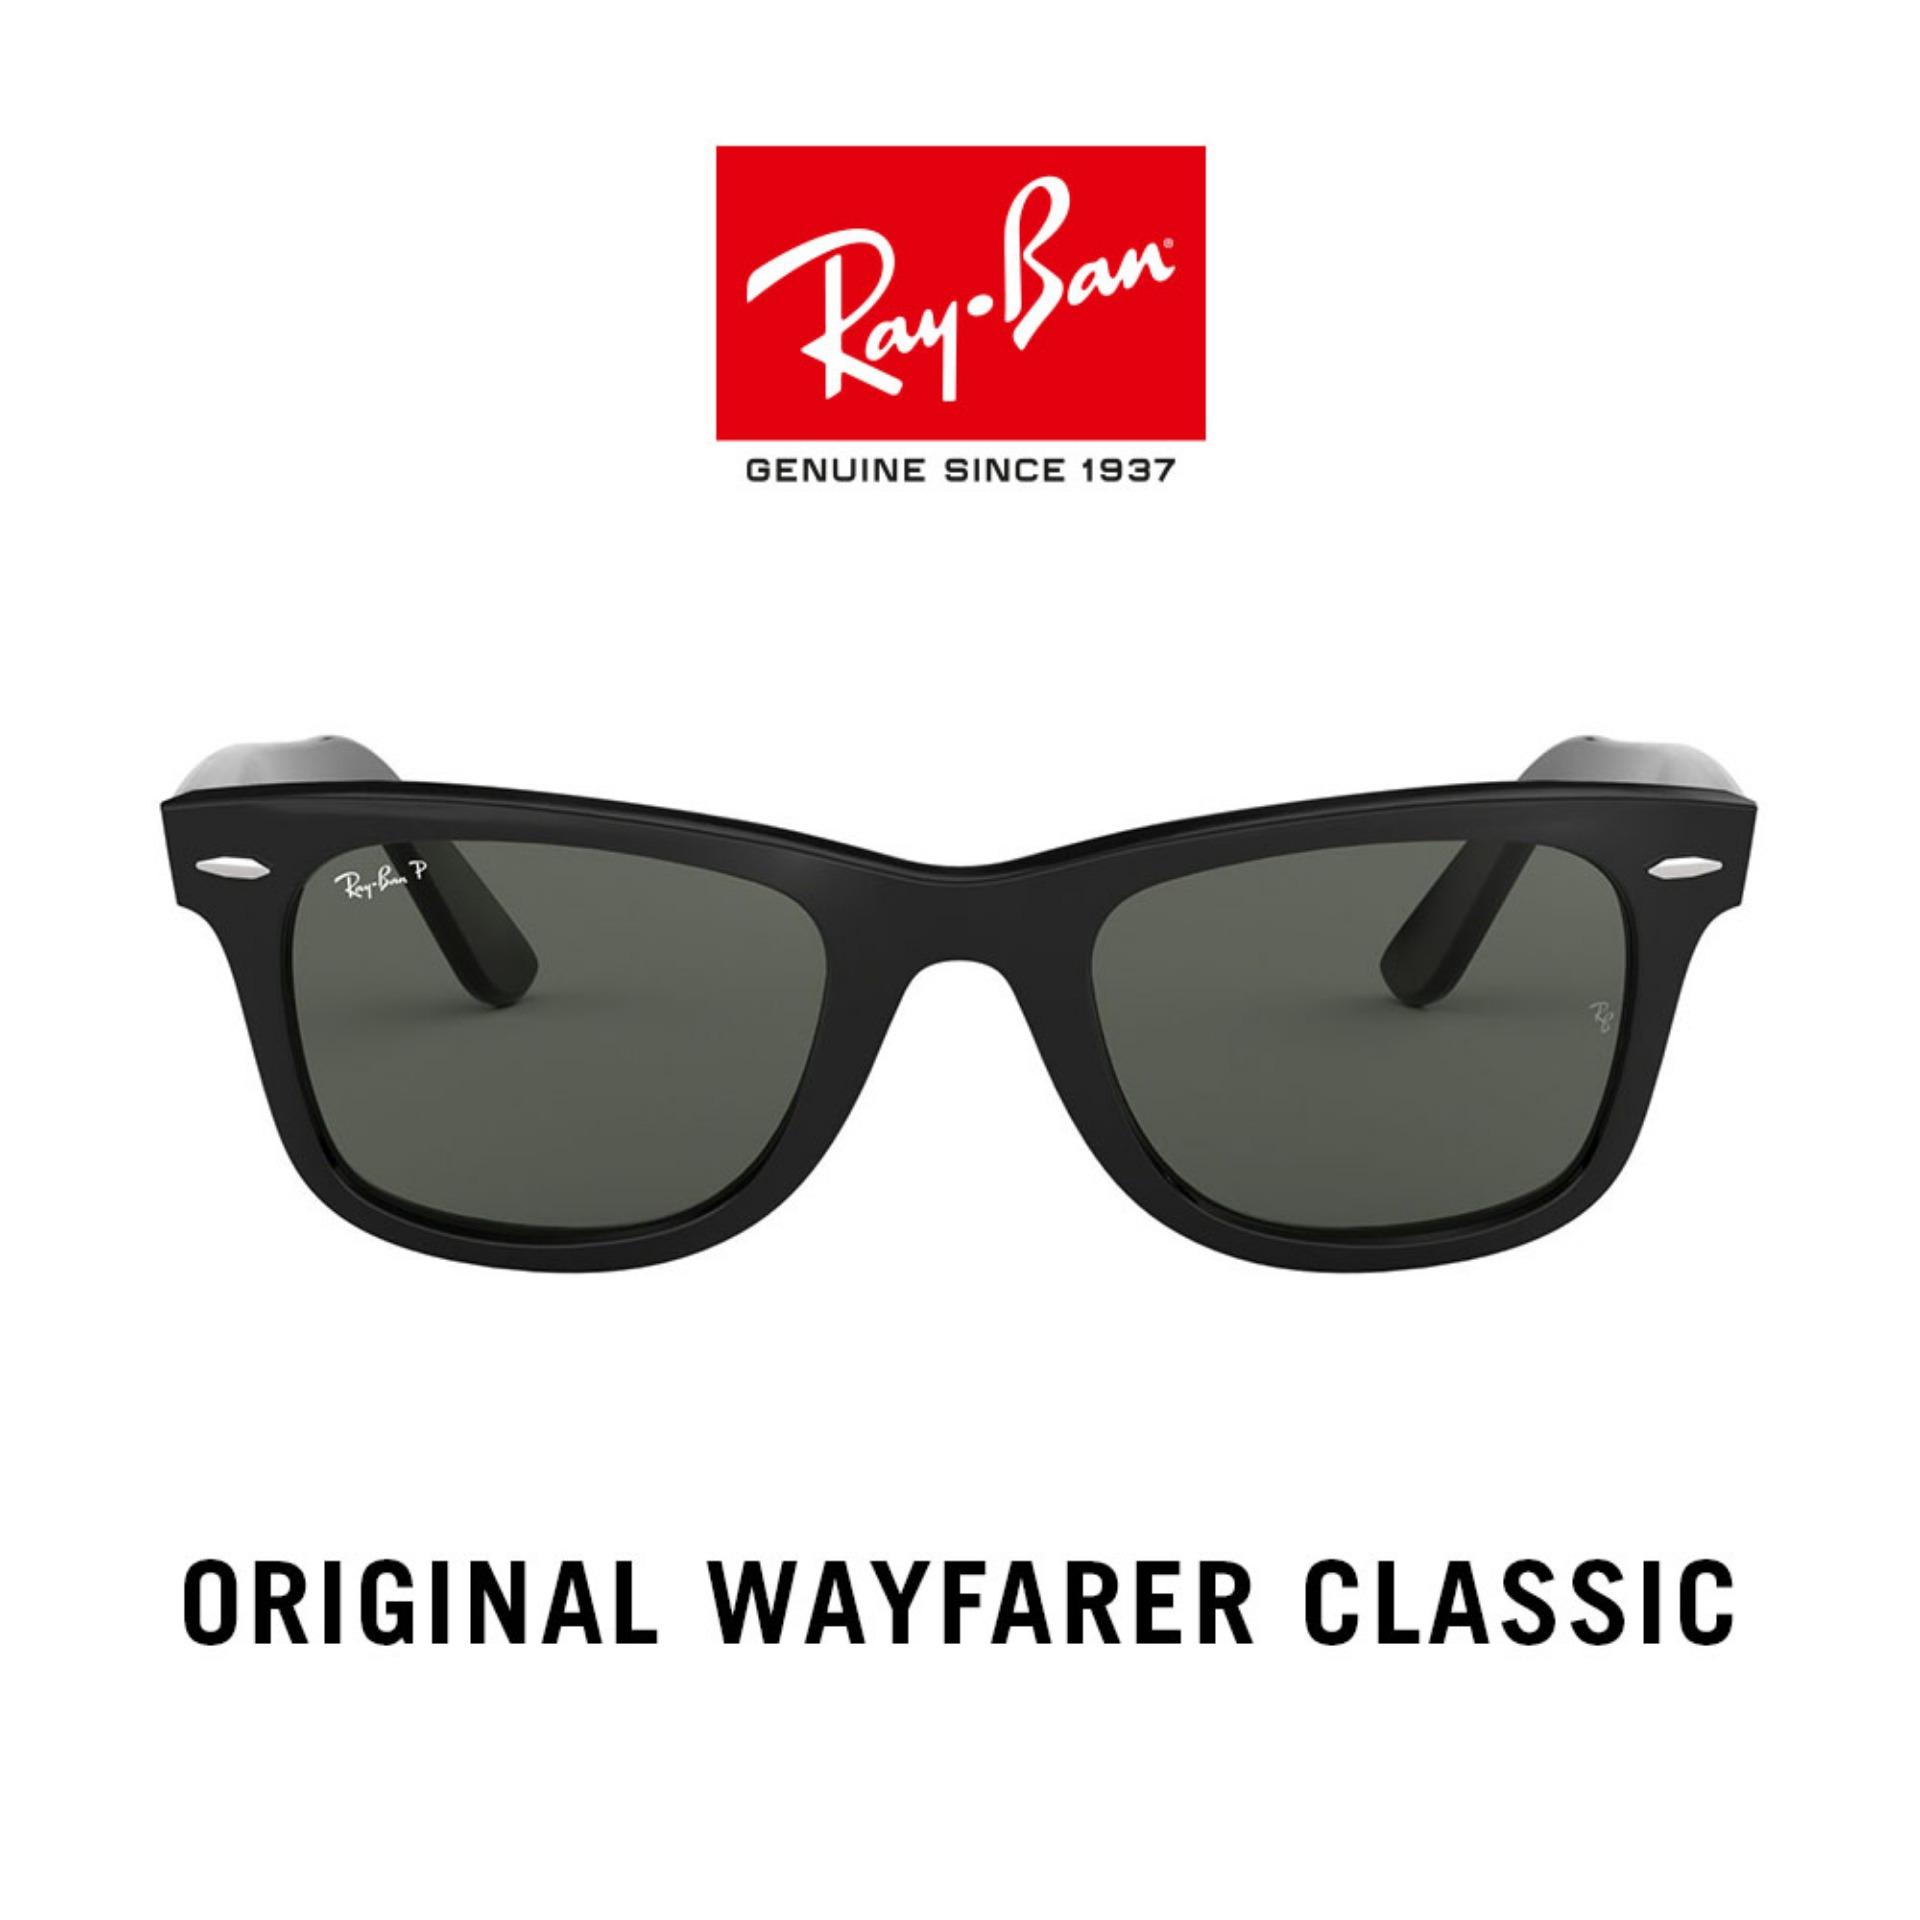 0704bcf71 Ray Ban Philippines: Ray Ban price list - Shades & Sunglasses for ...